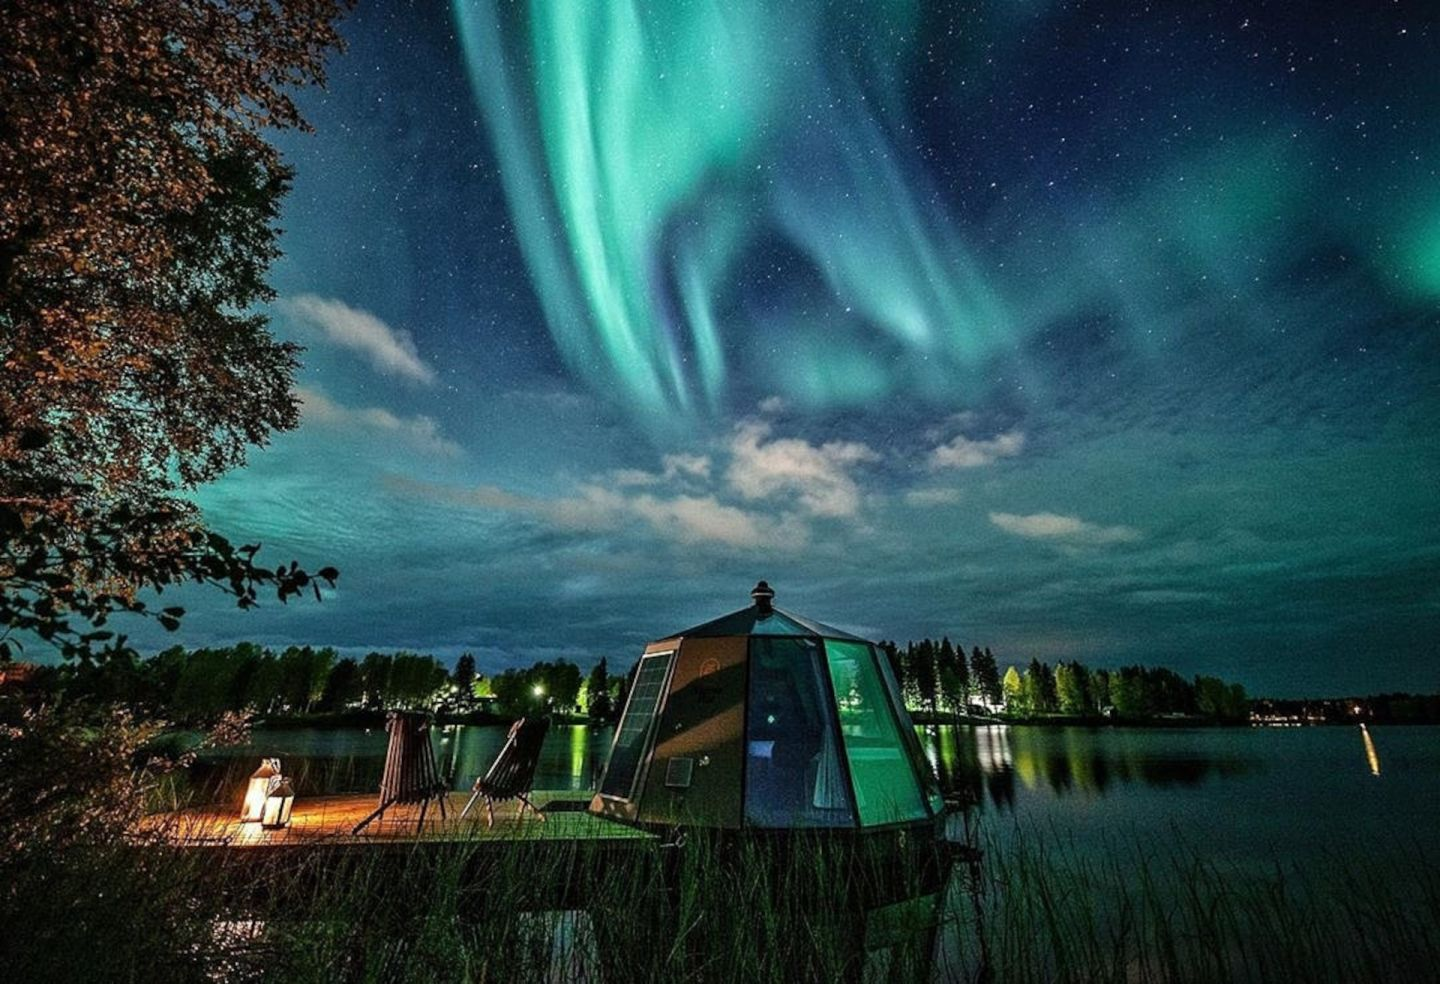 Northern Lights over floating igloos in Ranua, Finland